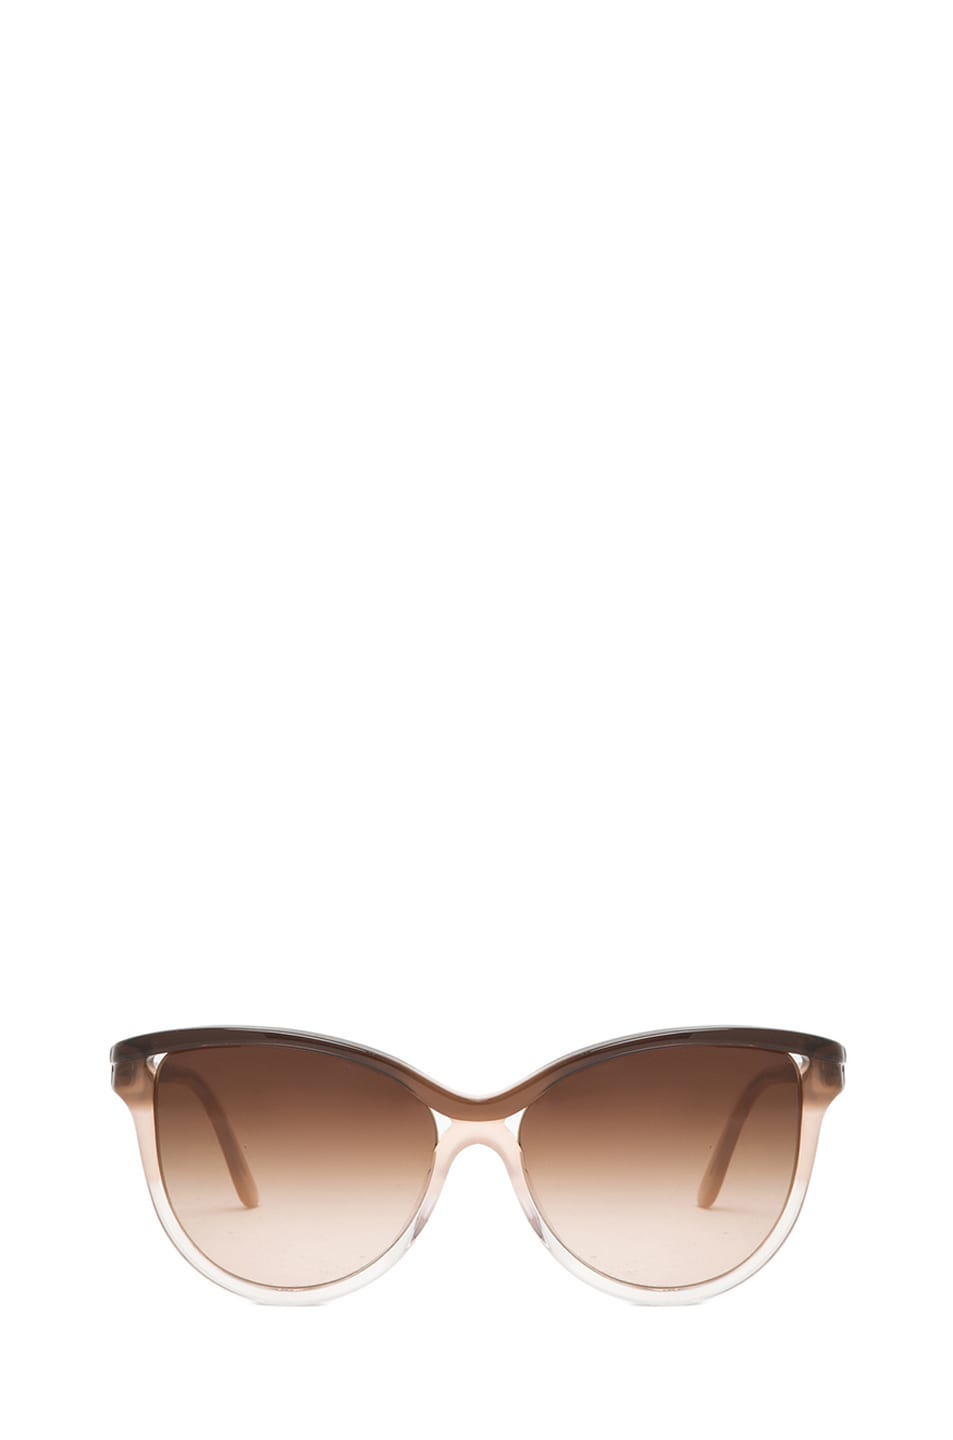 Image 1 of Stella McCartney Rounded Cat Eye Sunglasses in Brown Fade